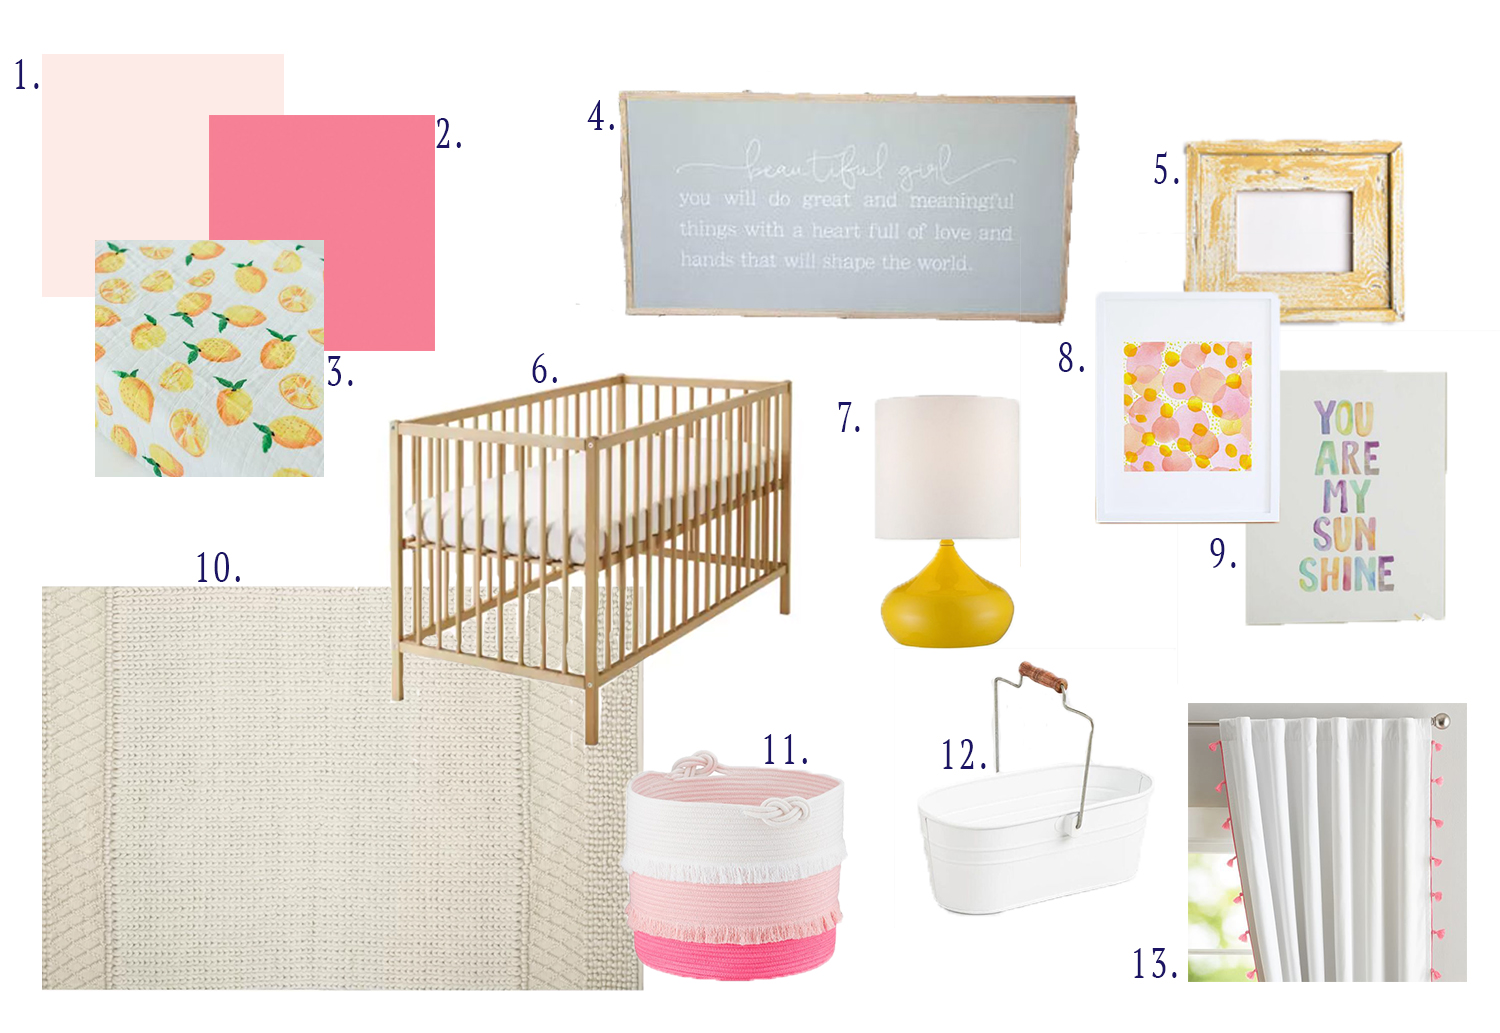 1. benjamin moore pink swirl pain t 2. benjamin moore strawberry shortcake paint  3. lemon changing pad cover  4. beautiful girl art  5. yellow wood frame  6. crib  7. yellow lamp  8. pink and yellow art  9. you are my sunshine art  10. sweater area rug  11. pink ombre basket  12. diaper holder  13. tassel curtains